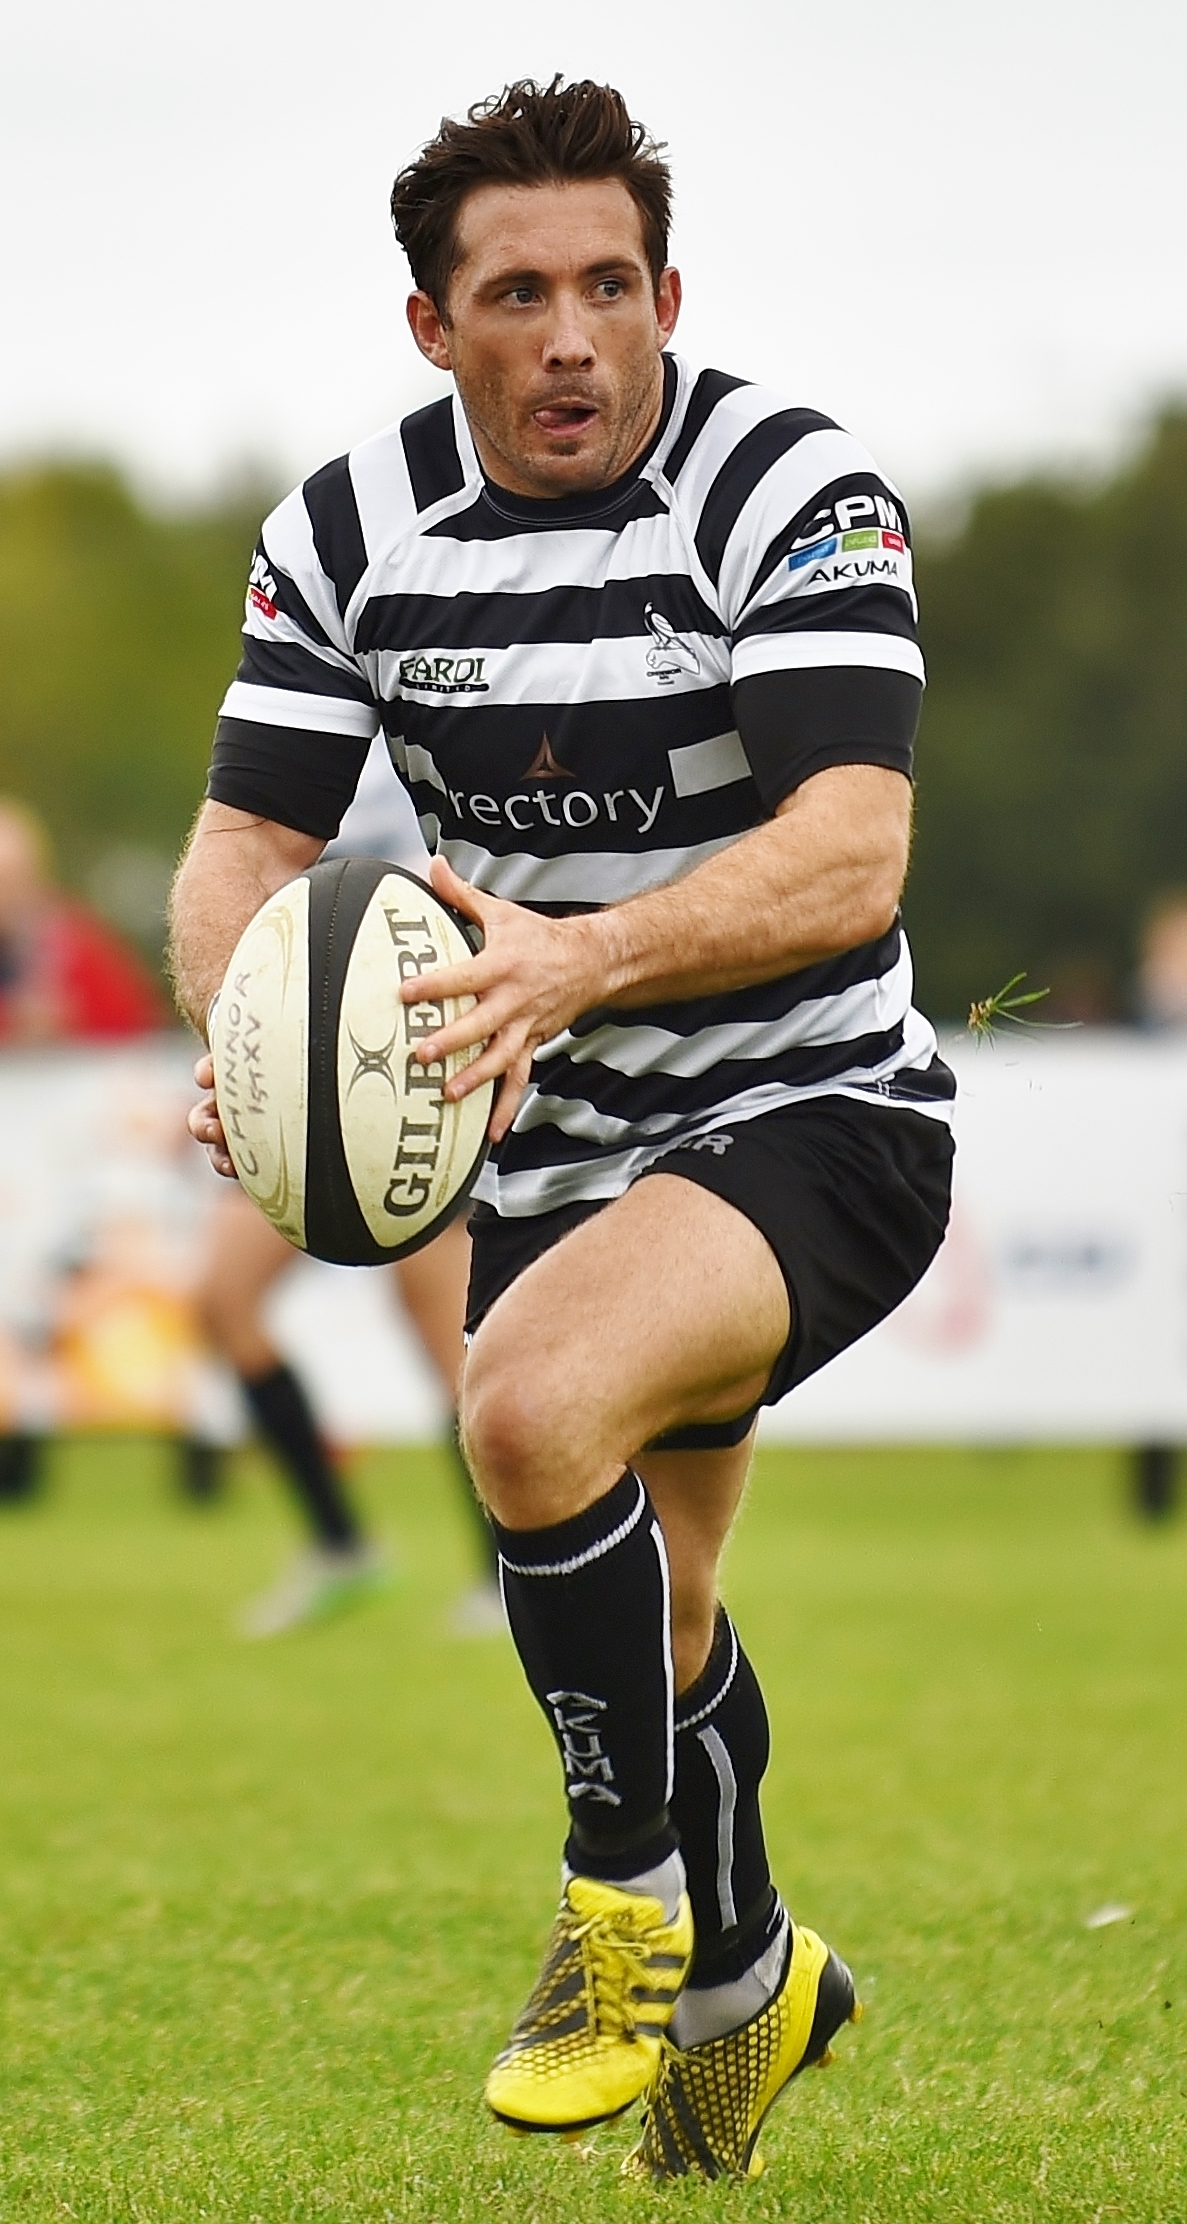 BACK: Jonny Bentley returns at fly half for Chinnor against Redingensians                       Picture: Aaron Bayliss